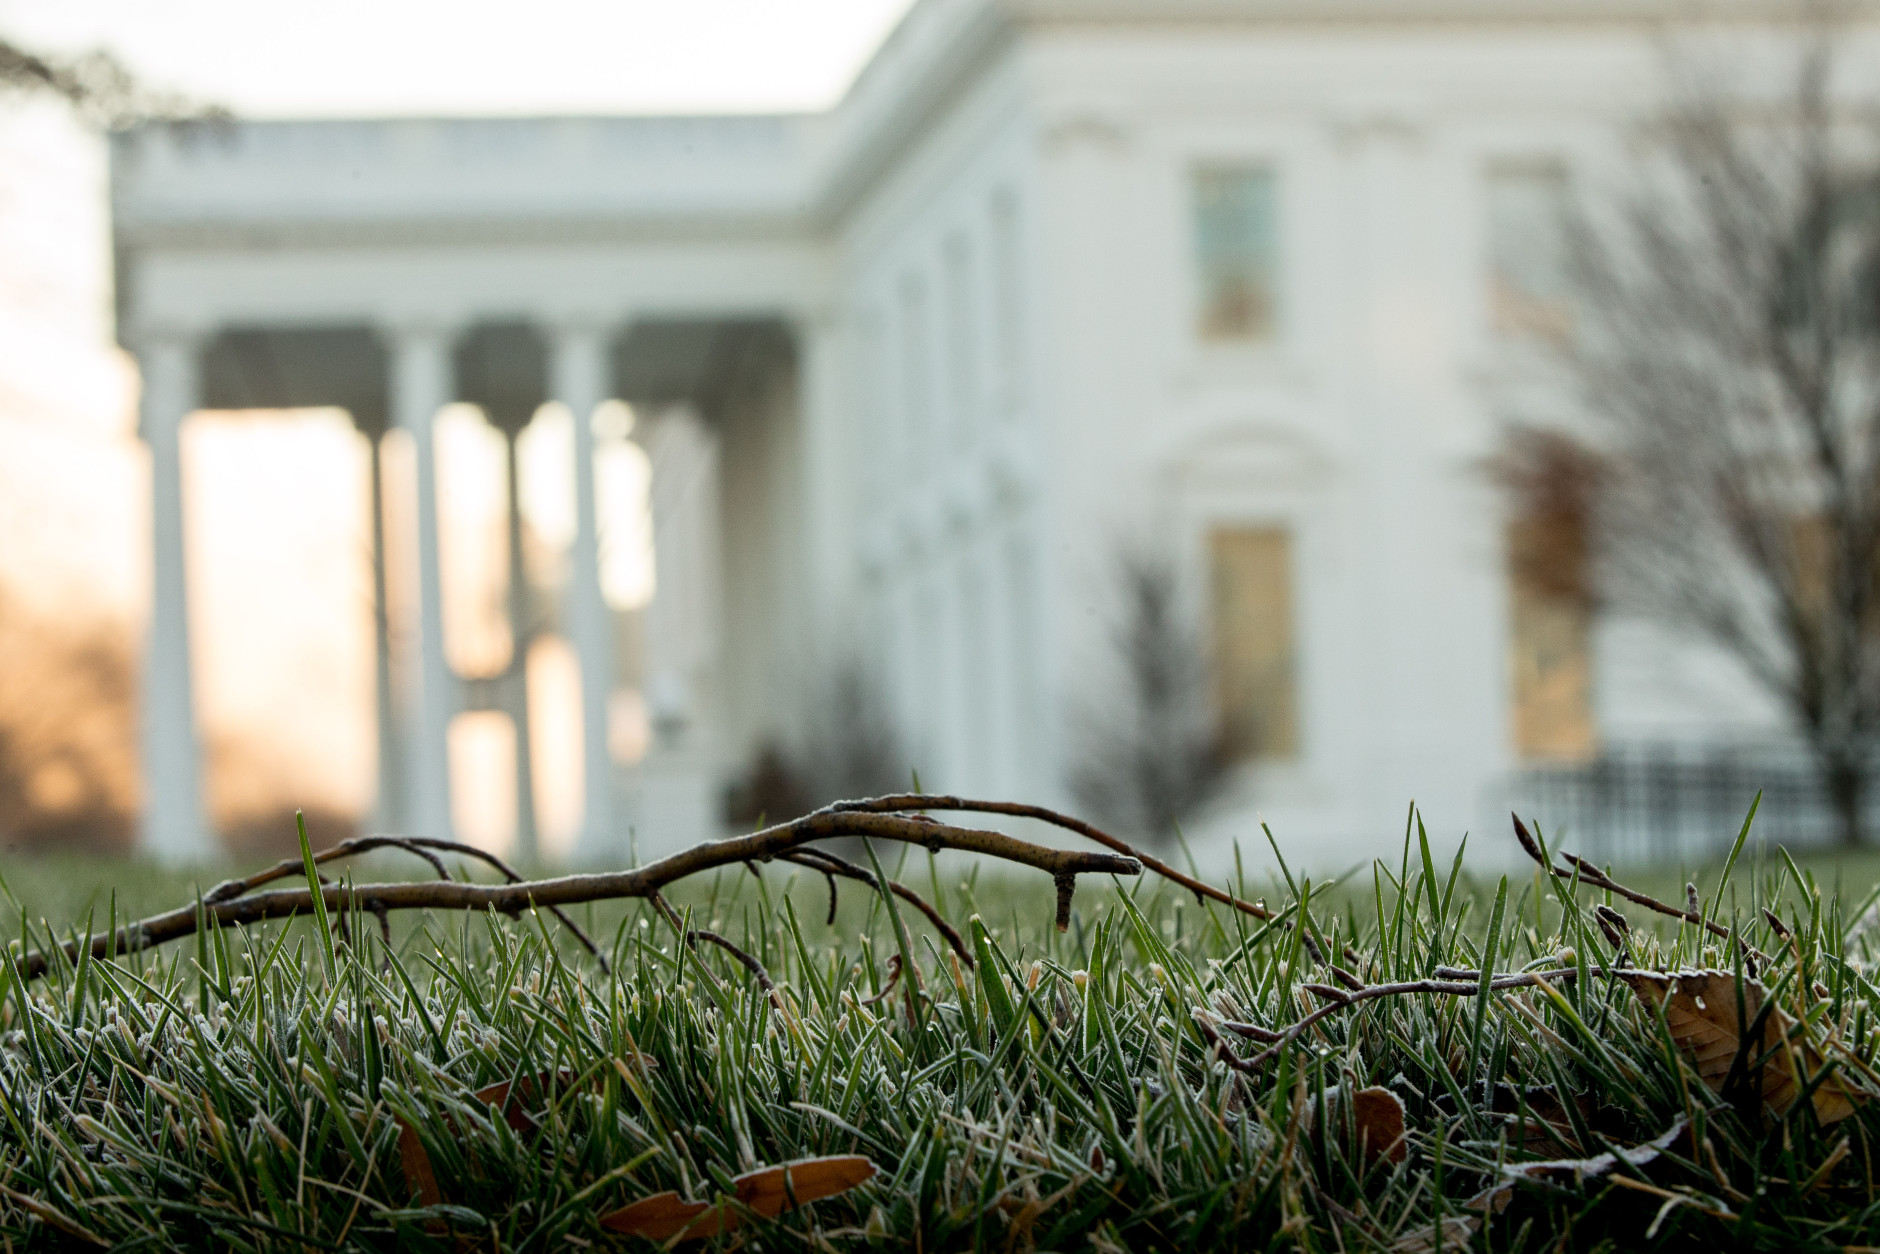 Frost is visible on the North Lawn of the White House, Sunday, Dec. 6, 2015, in early morning light in Washington. (AP Photo/Andrew Harnik)